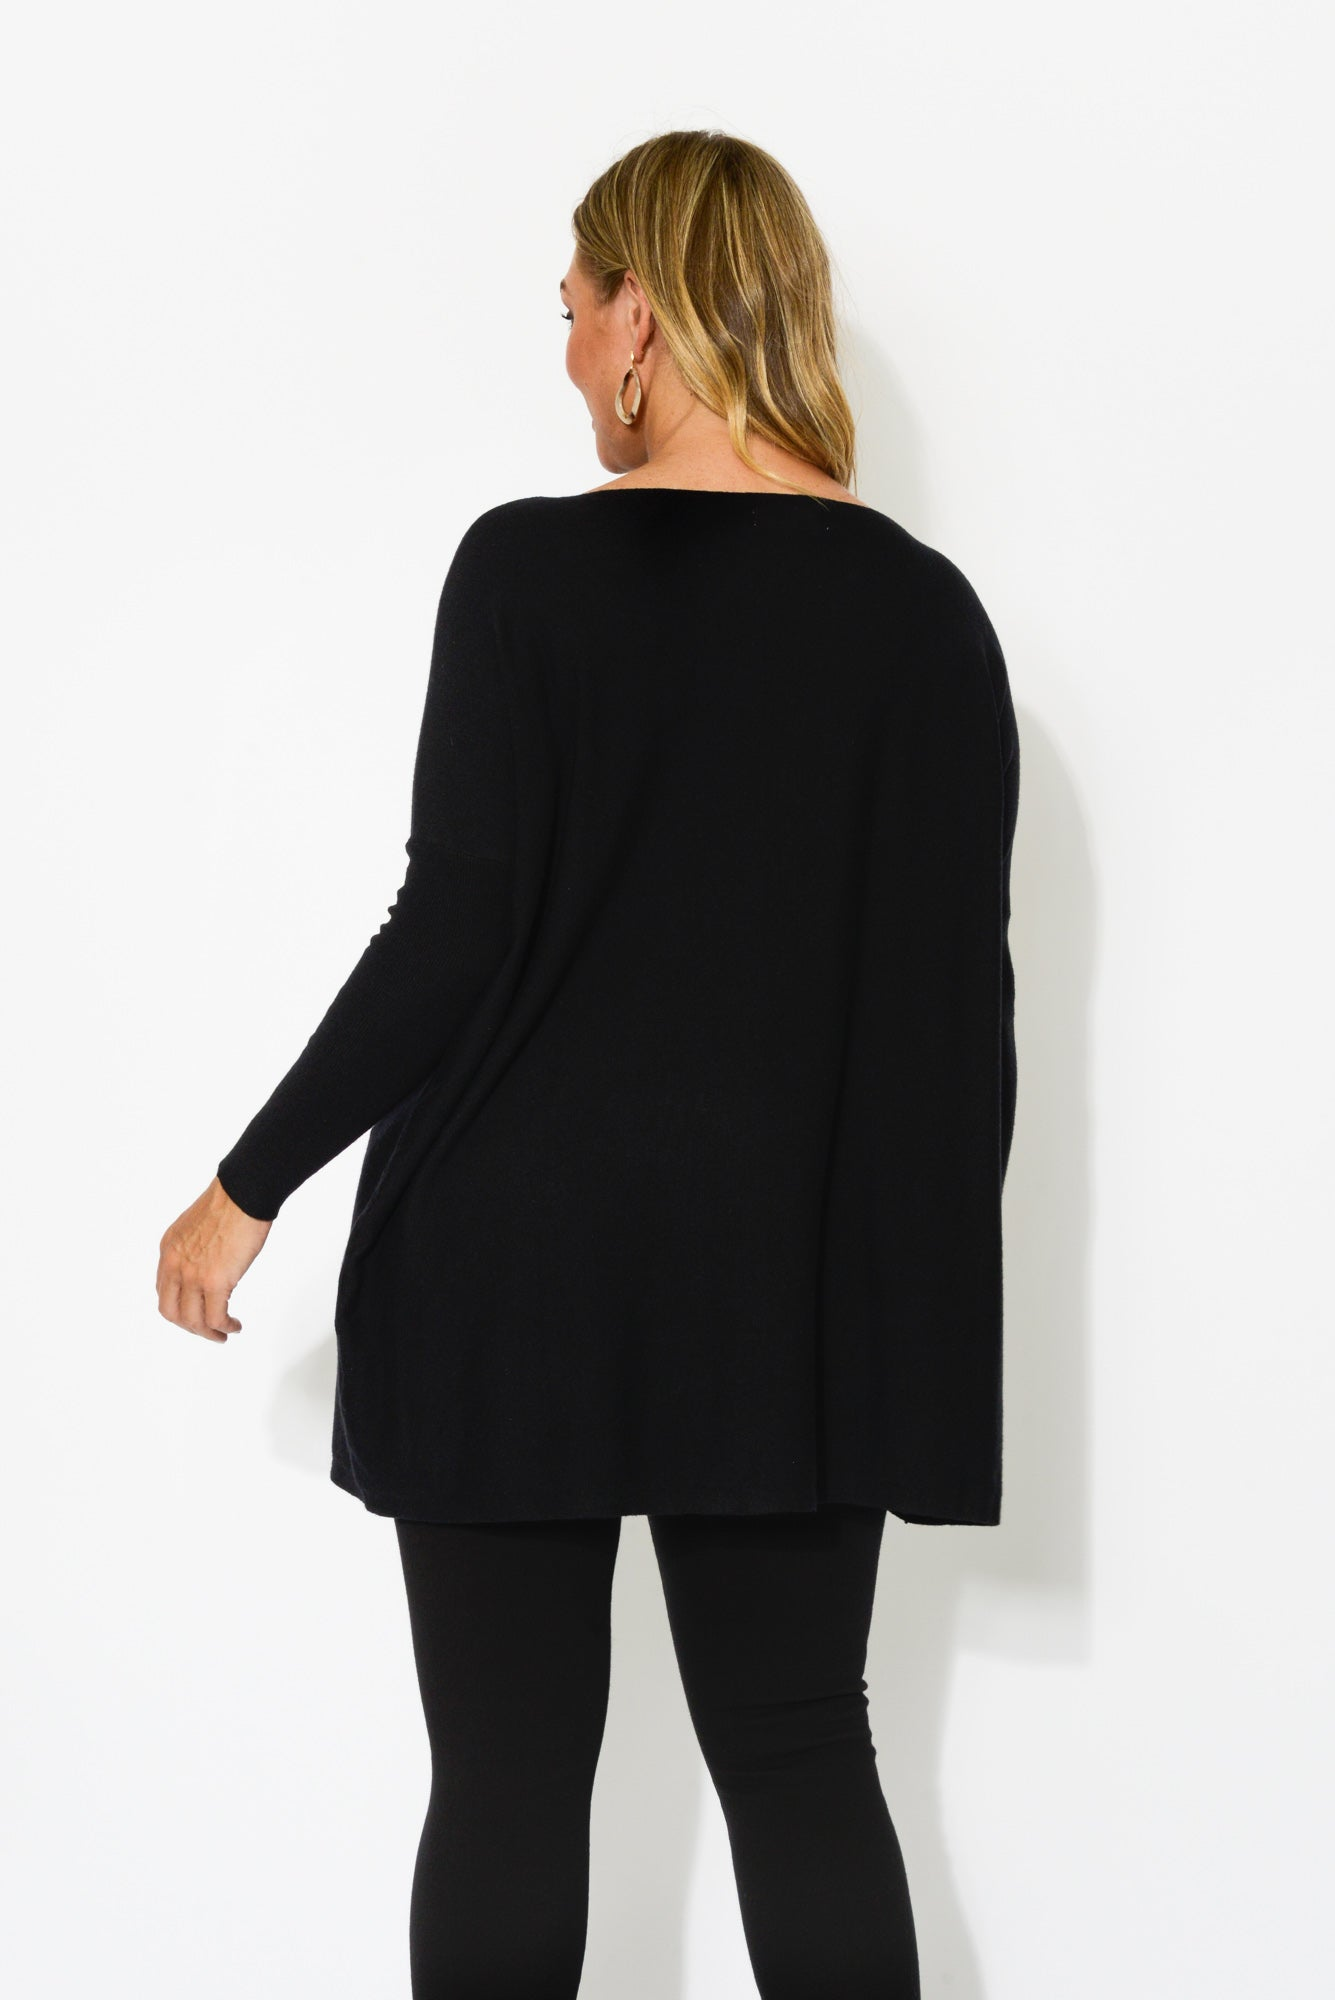 Isy Black Cotton Oversized Knit - Blue Bungalow